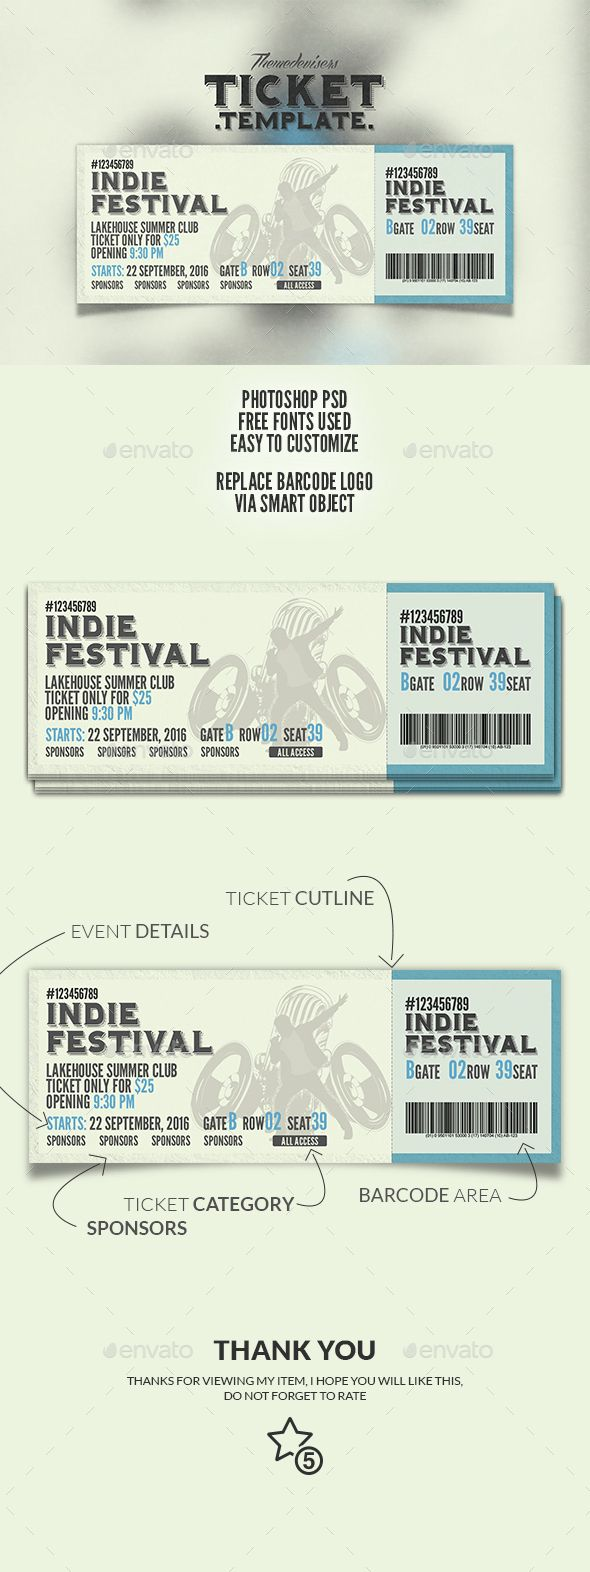 Top Best Ticket Printing Ideas On Pinterest London Tickets